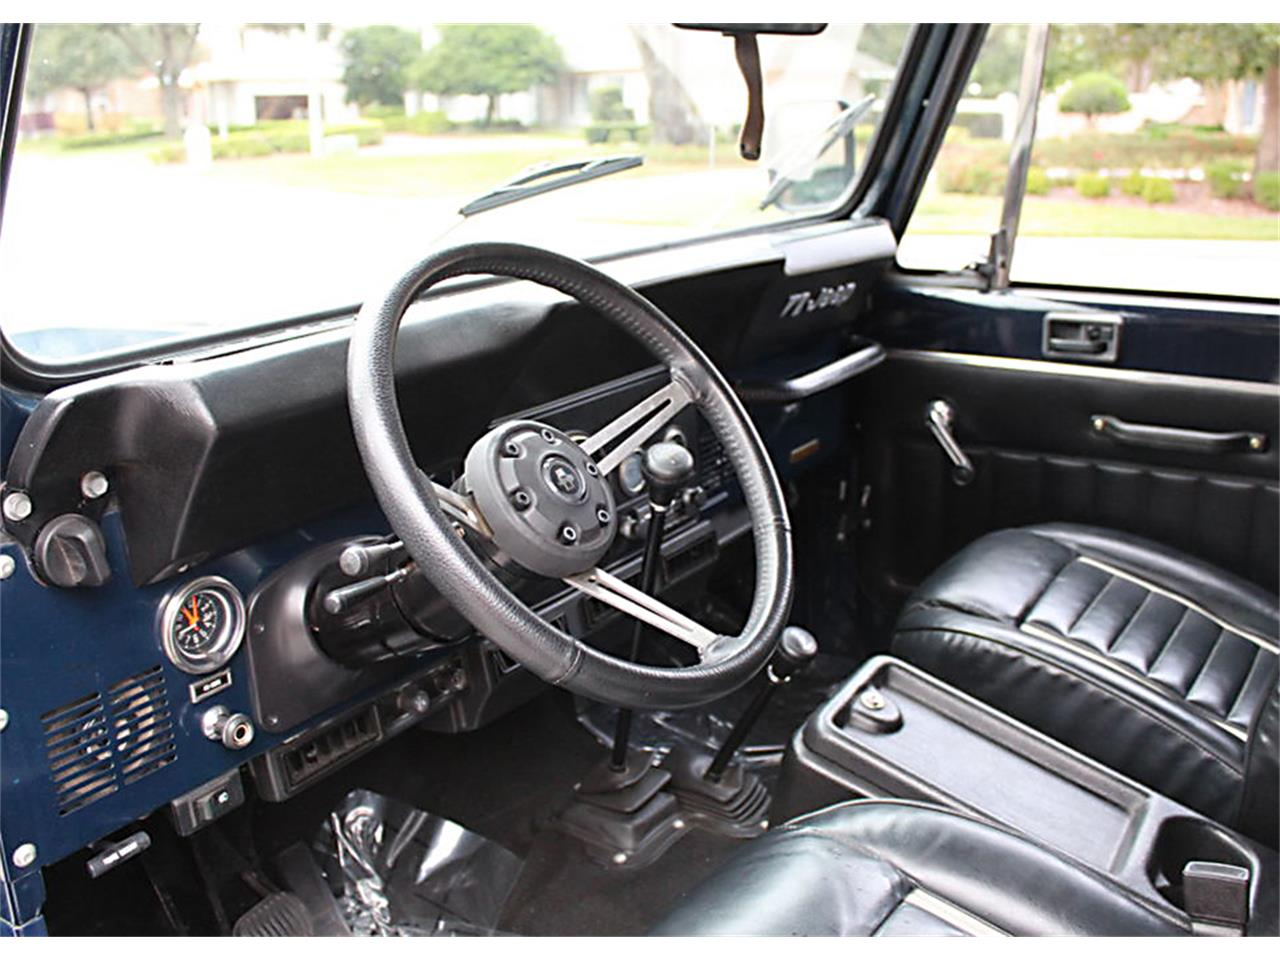 Large Picture of '81 CJ7 located in Florida Offered by MJC Classic Cars - PH46